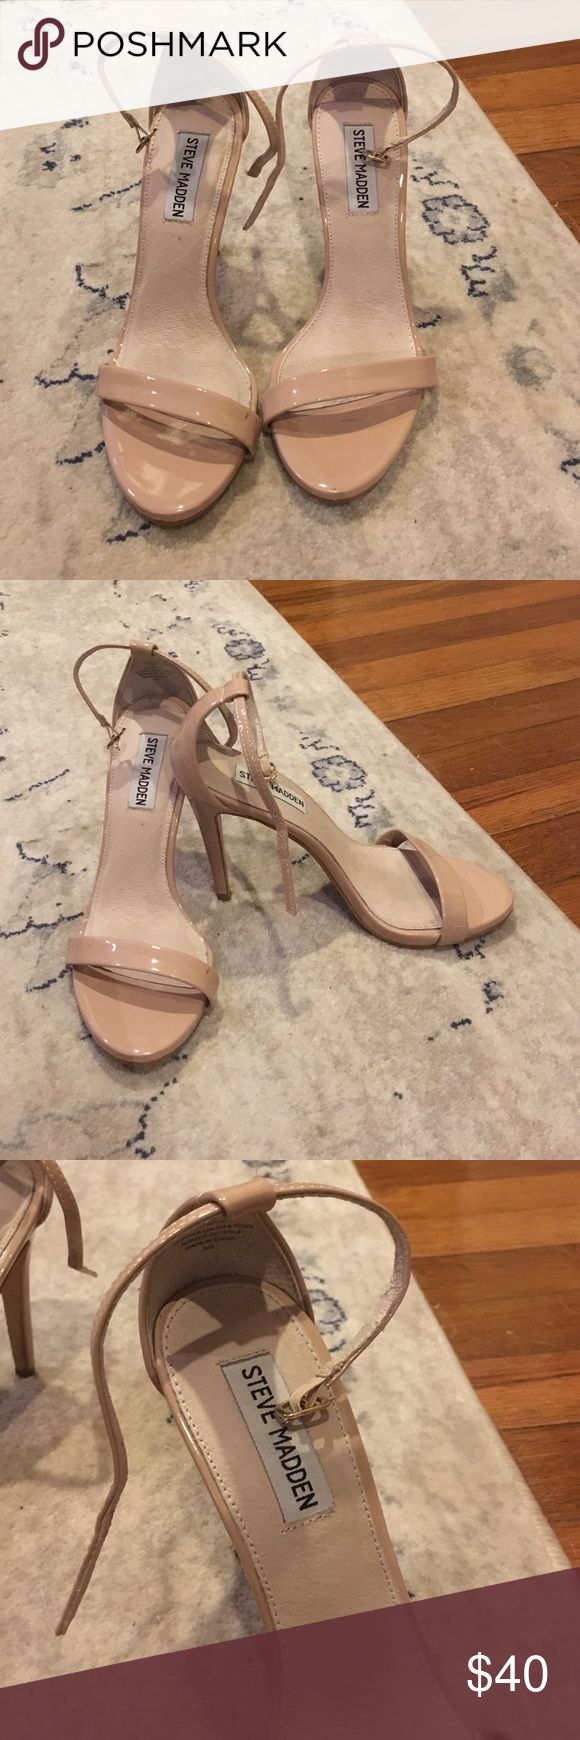 Steve Madden, Stecy Two Piece Sandals, Nude Women's Steve Madden Two-Piece Stecy Sandal in nude. Worn twice. Great condition. Steve Madden Shoes Heels